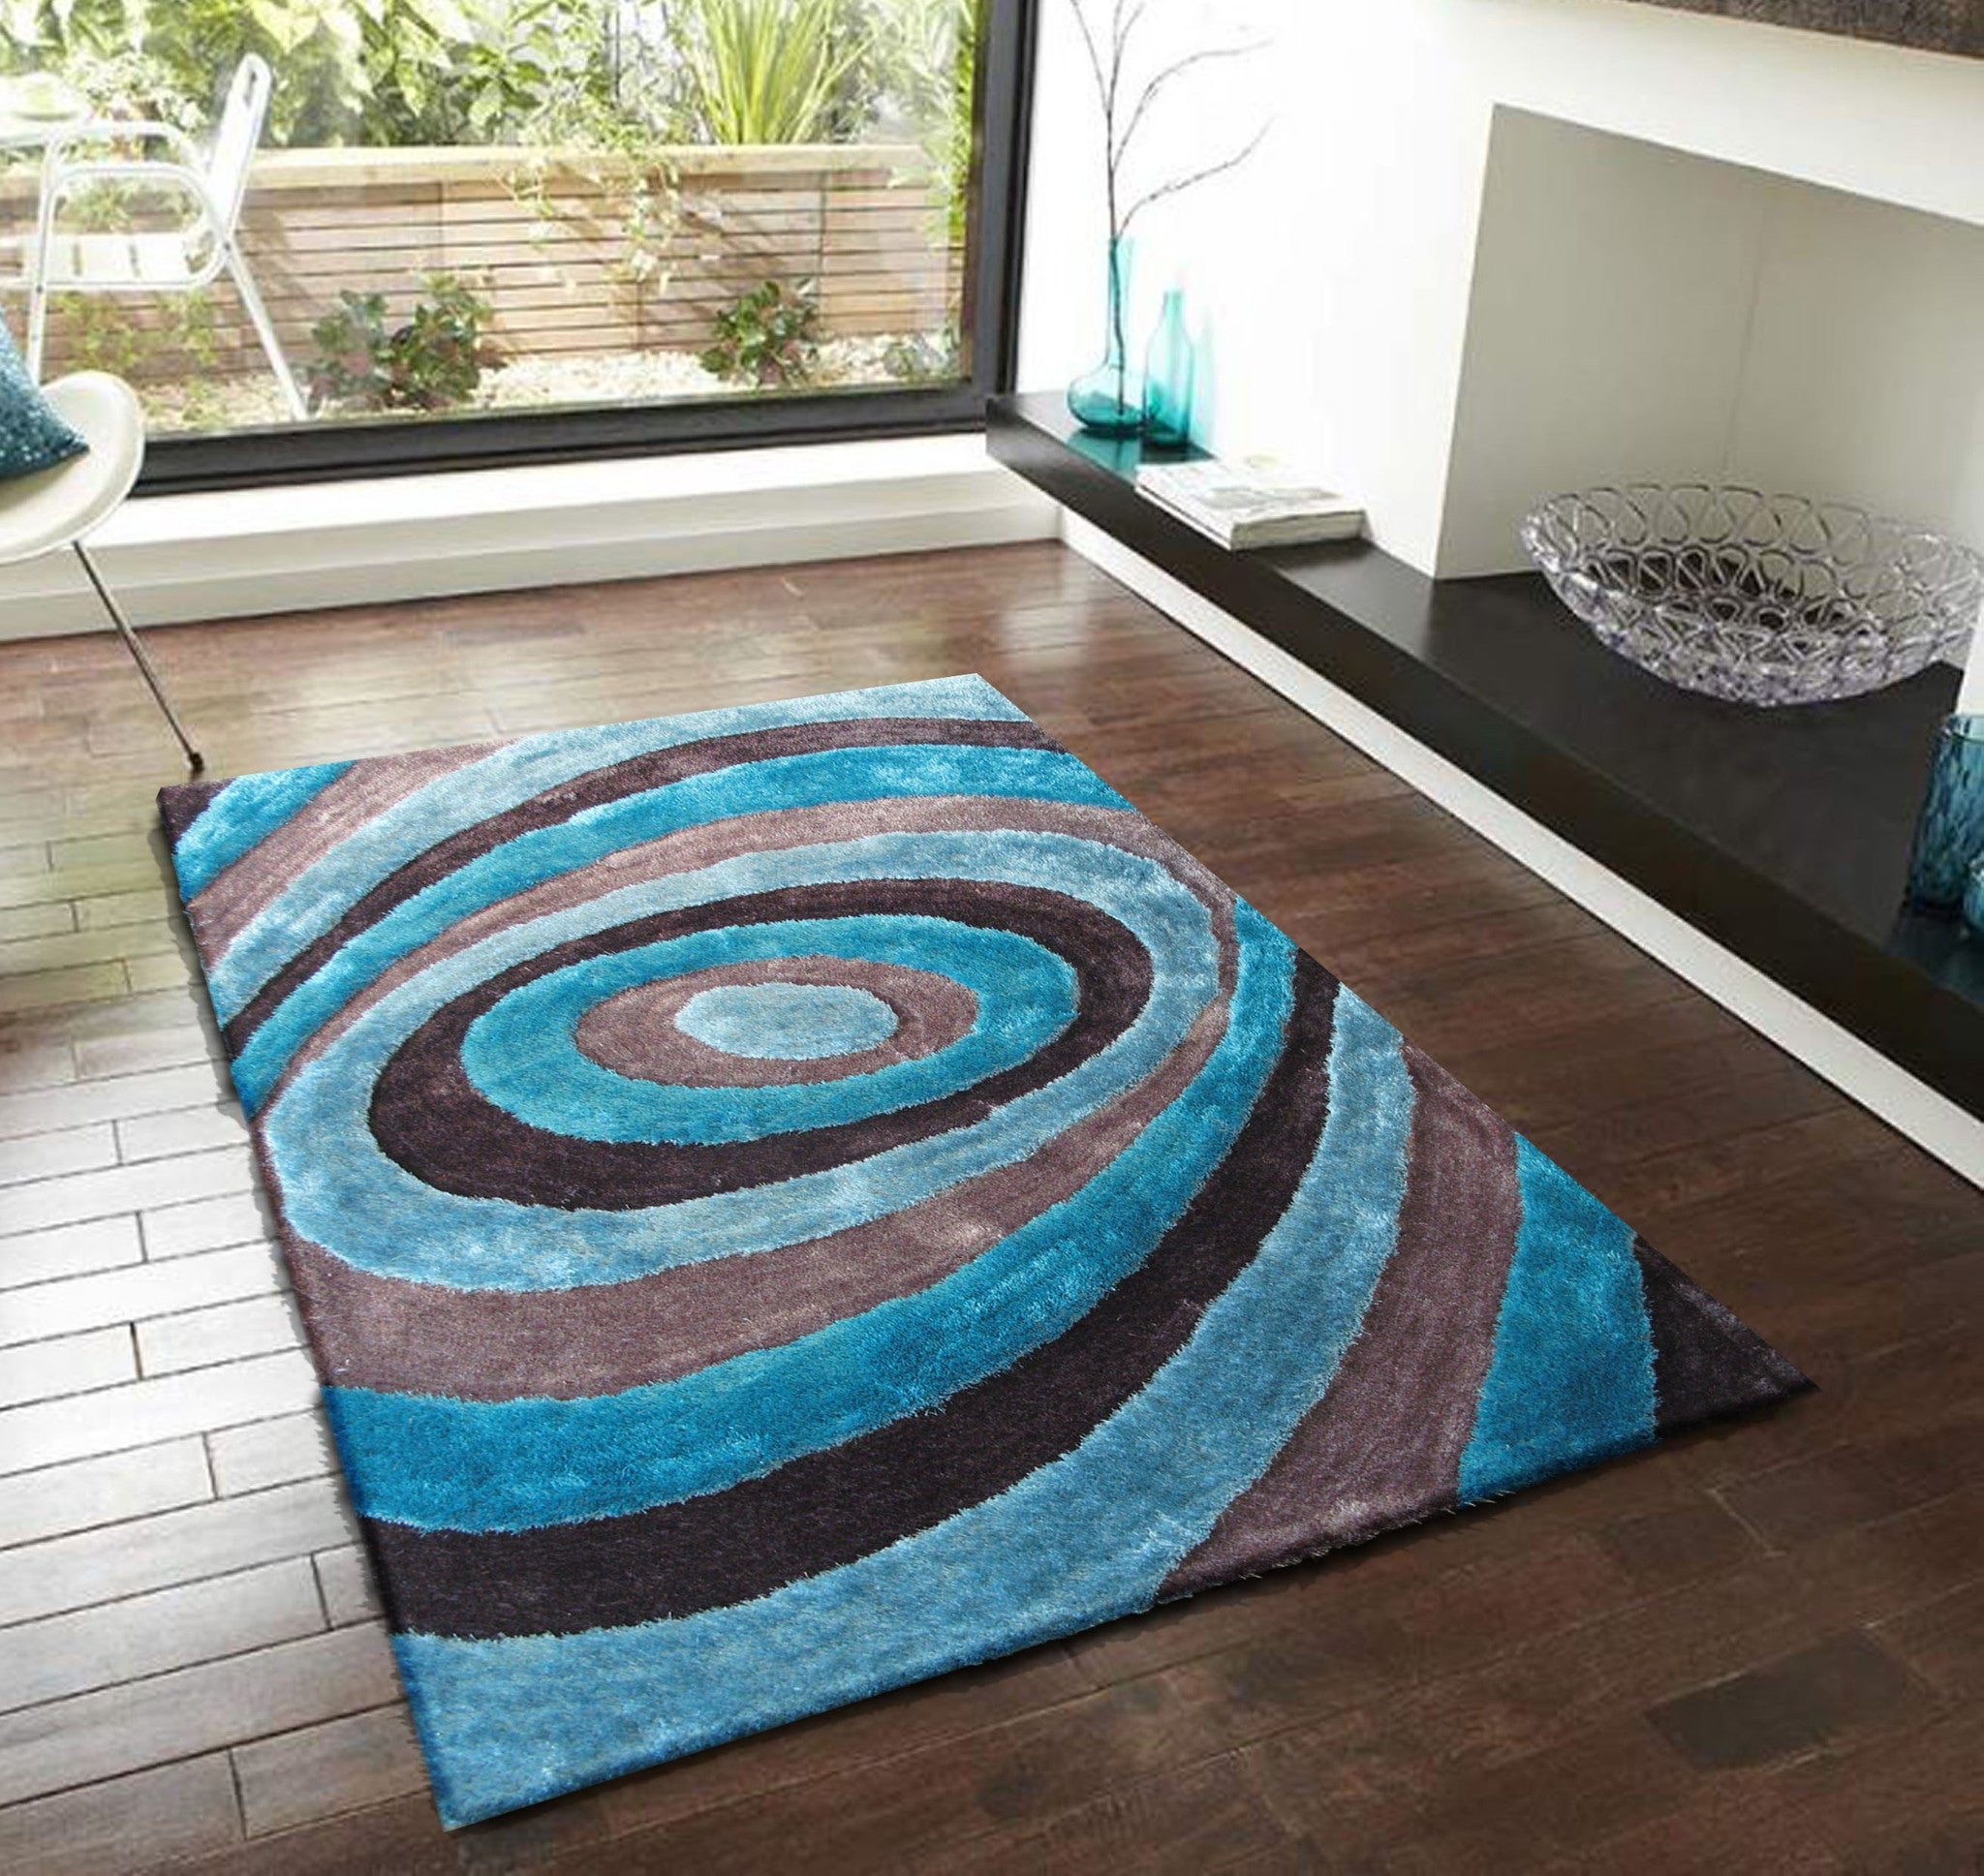 Handmade Gray With Blue Dimensional Shag Area Rug With